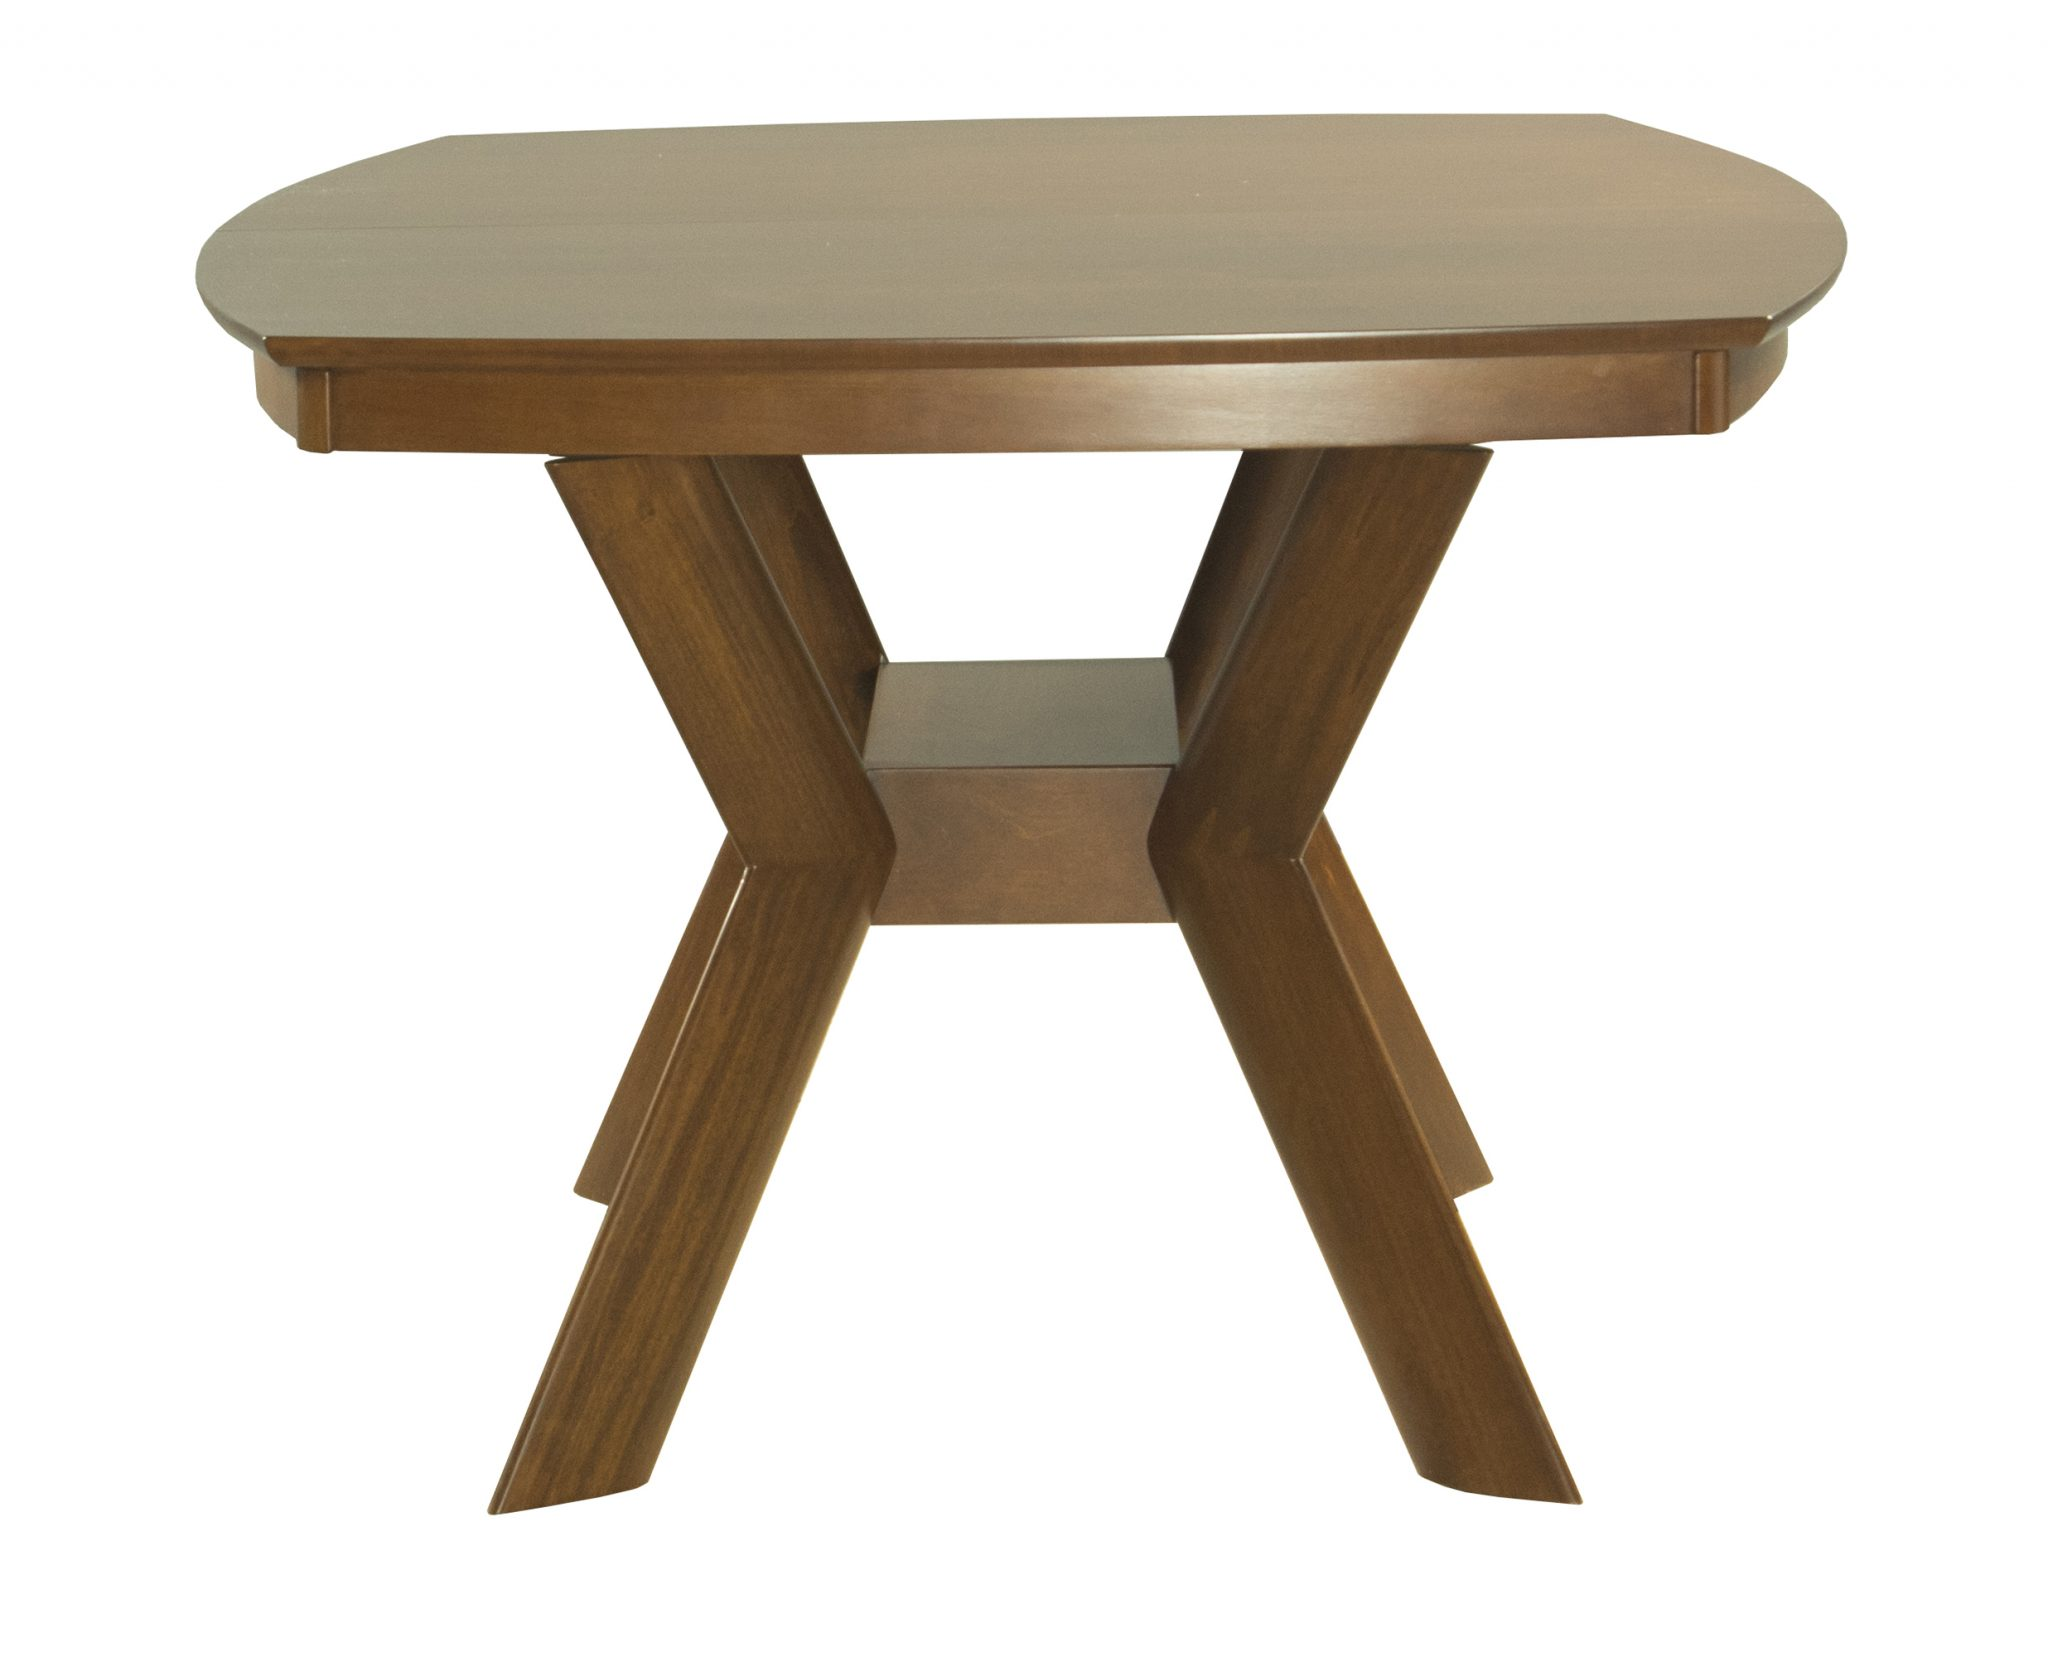 MSWB 4260 2 KBS Nutmeg end Top Result 50 Inspirational Standard Coffee Table Height Picture 2017 Uqw1